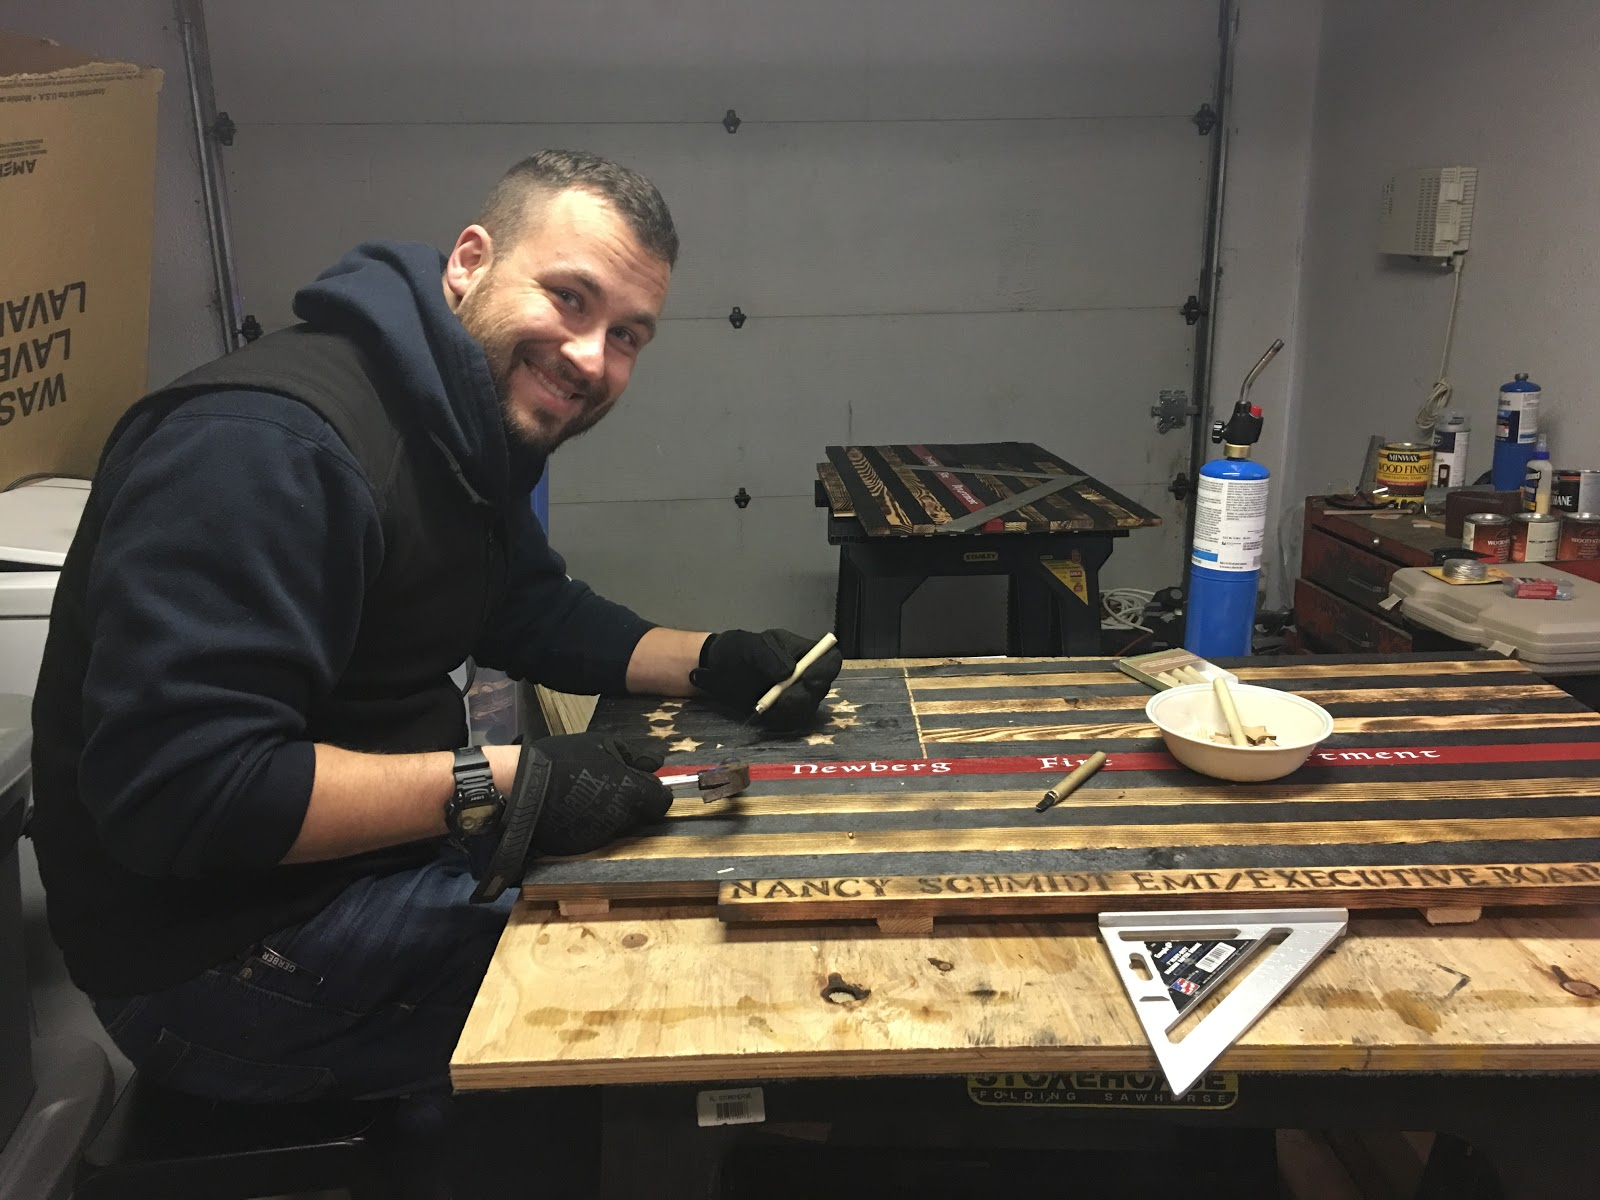 how-i-started-a-4k-month-veteran-and-first-responder-woodworking-company